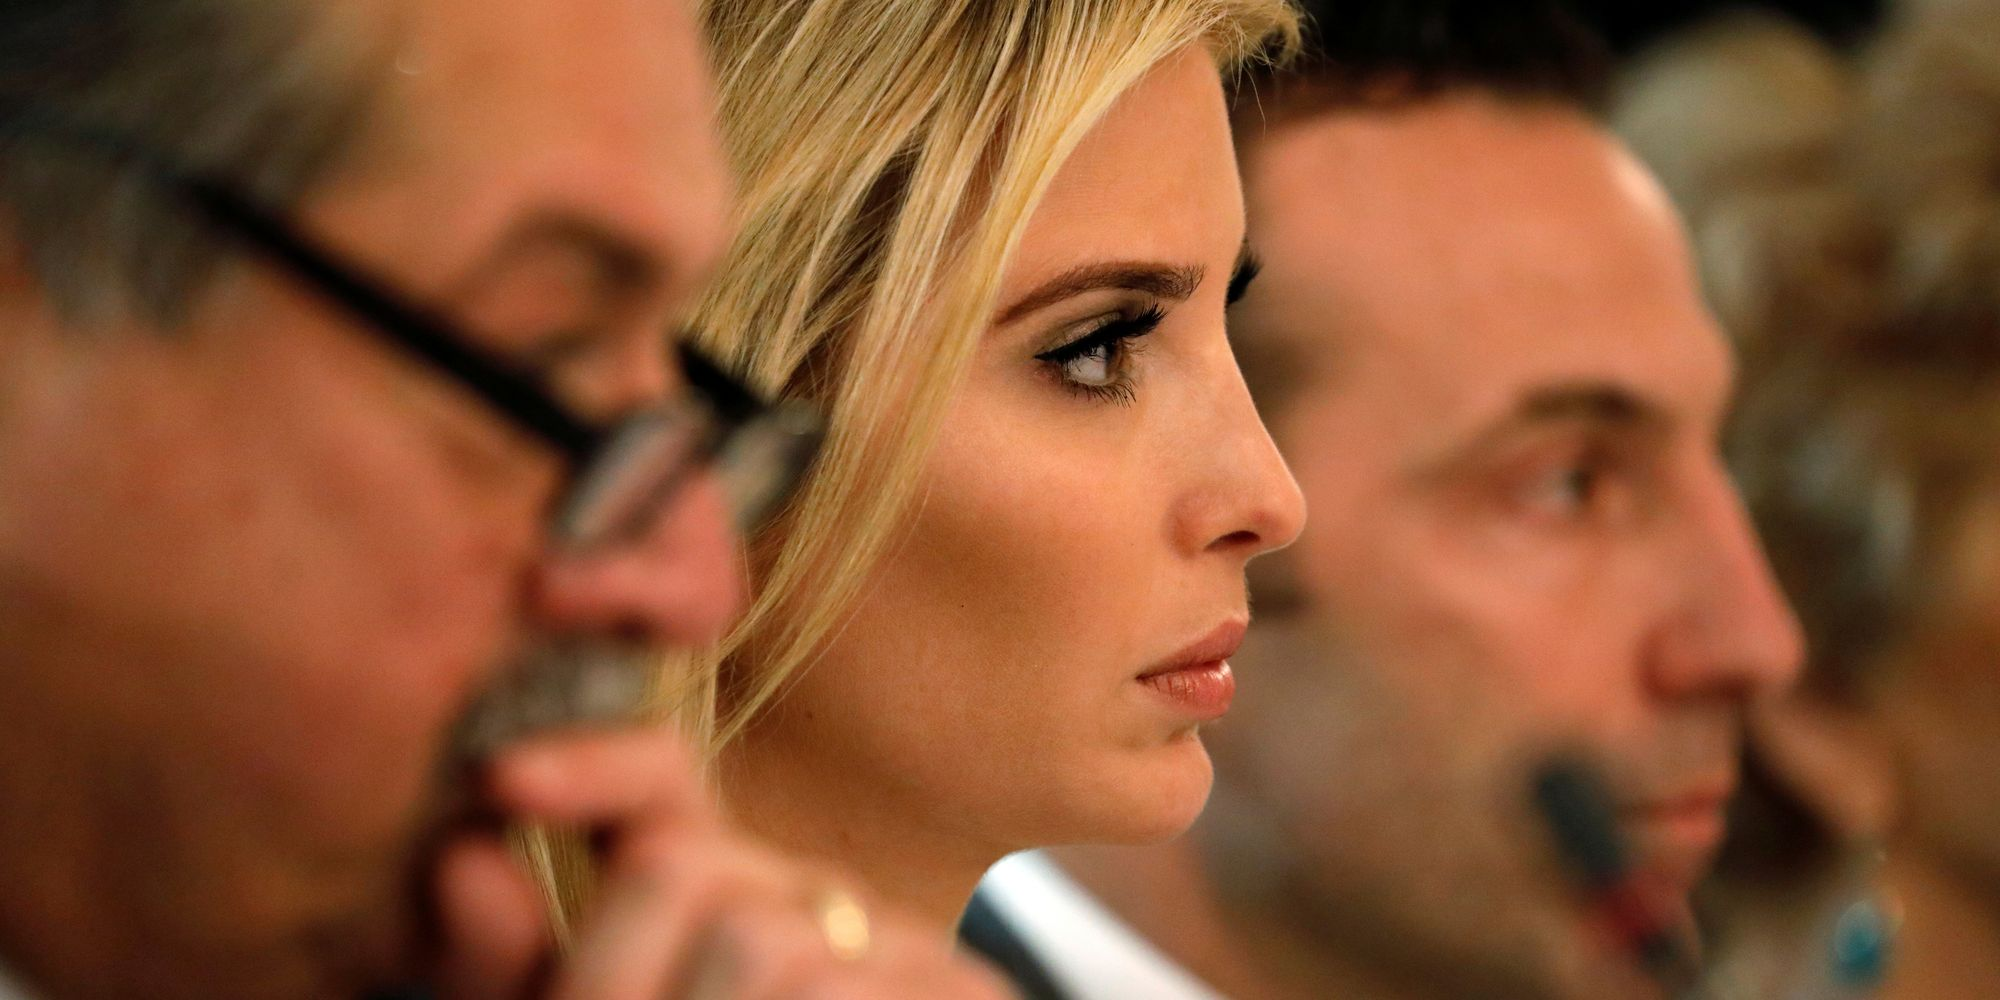 New Reports Raise Questions About Ivanka Trump's White House Role